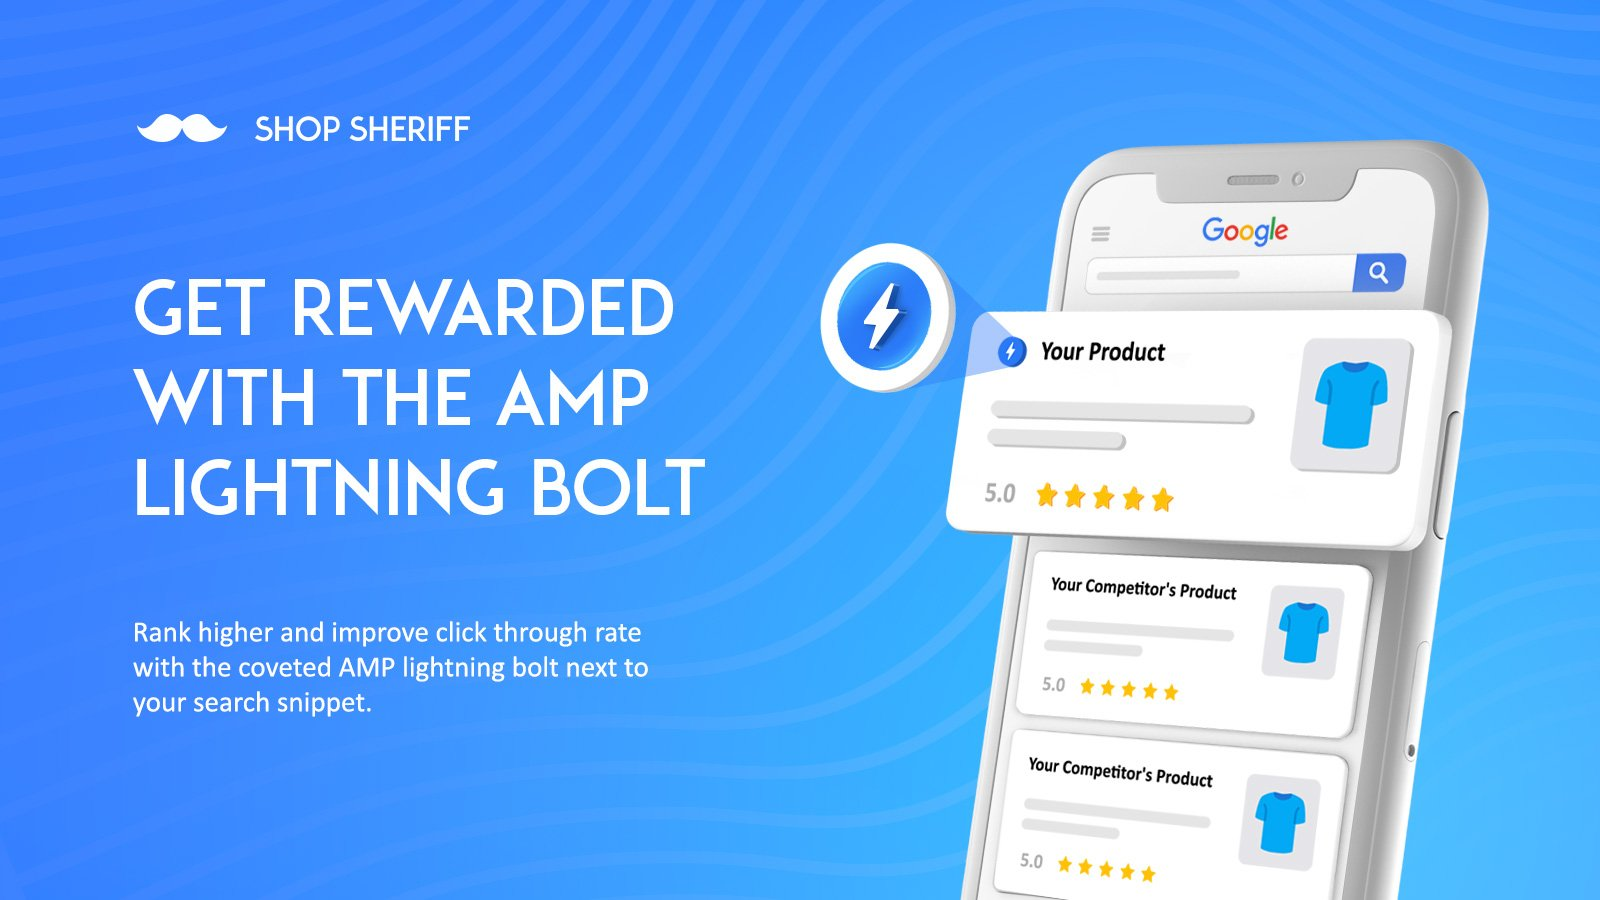 amp shop sheriff seo app